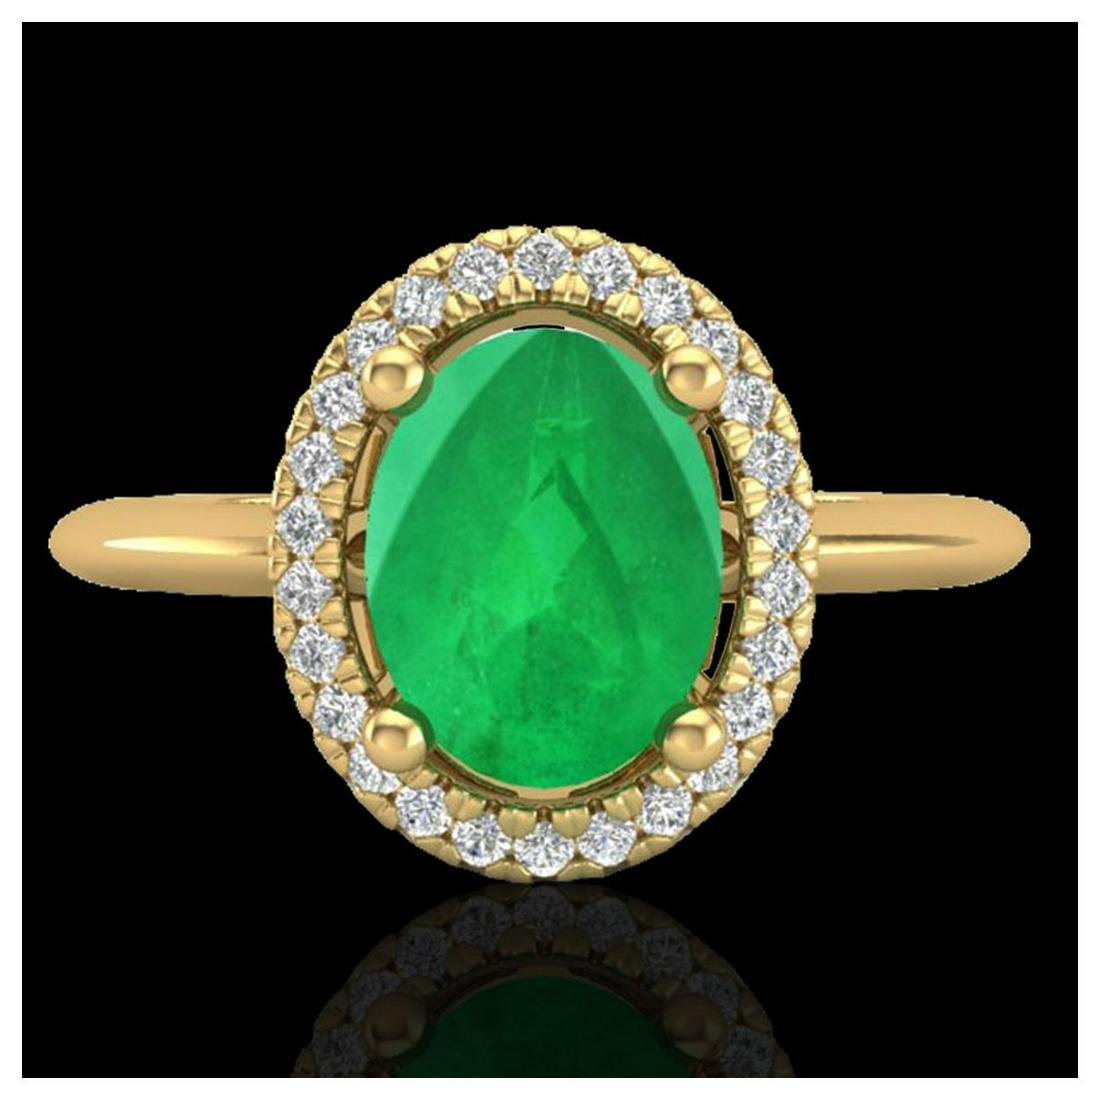 2 ctw Emerald & VS/SI Diamond Ring Halo 18K Yellow Gold